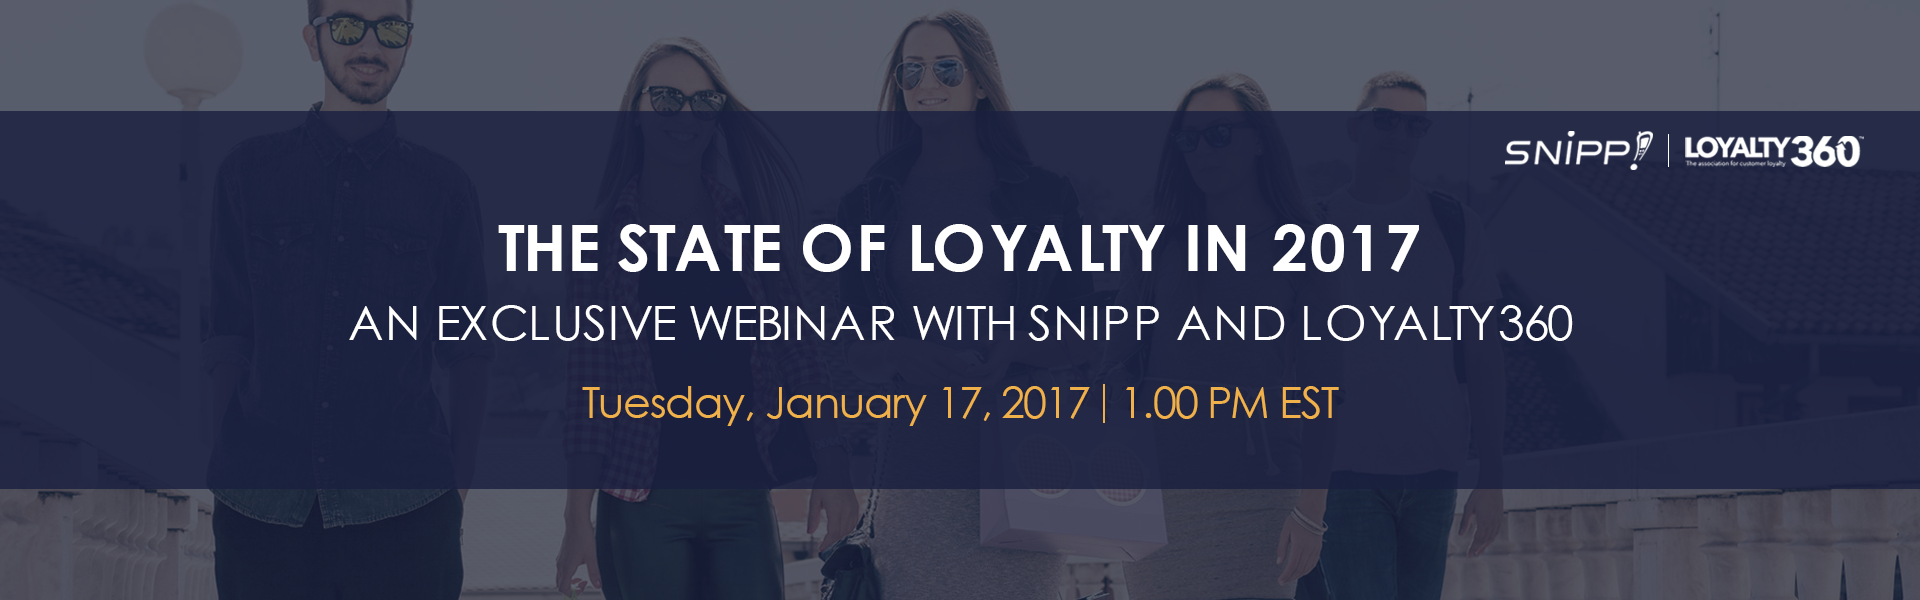 WEBINAR! THE STATE OF LOYALTY IN 2017 – WITH SNIPP AND LOYALTY360